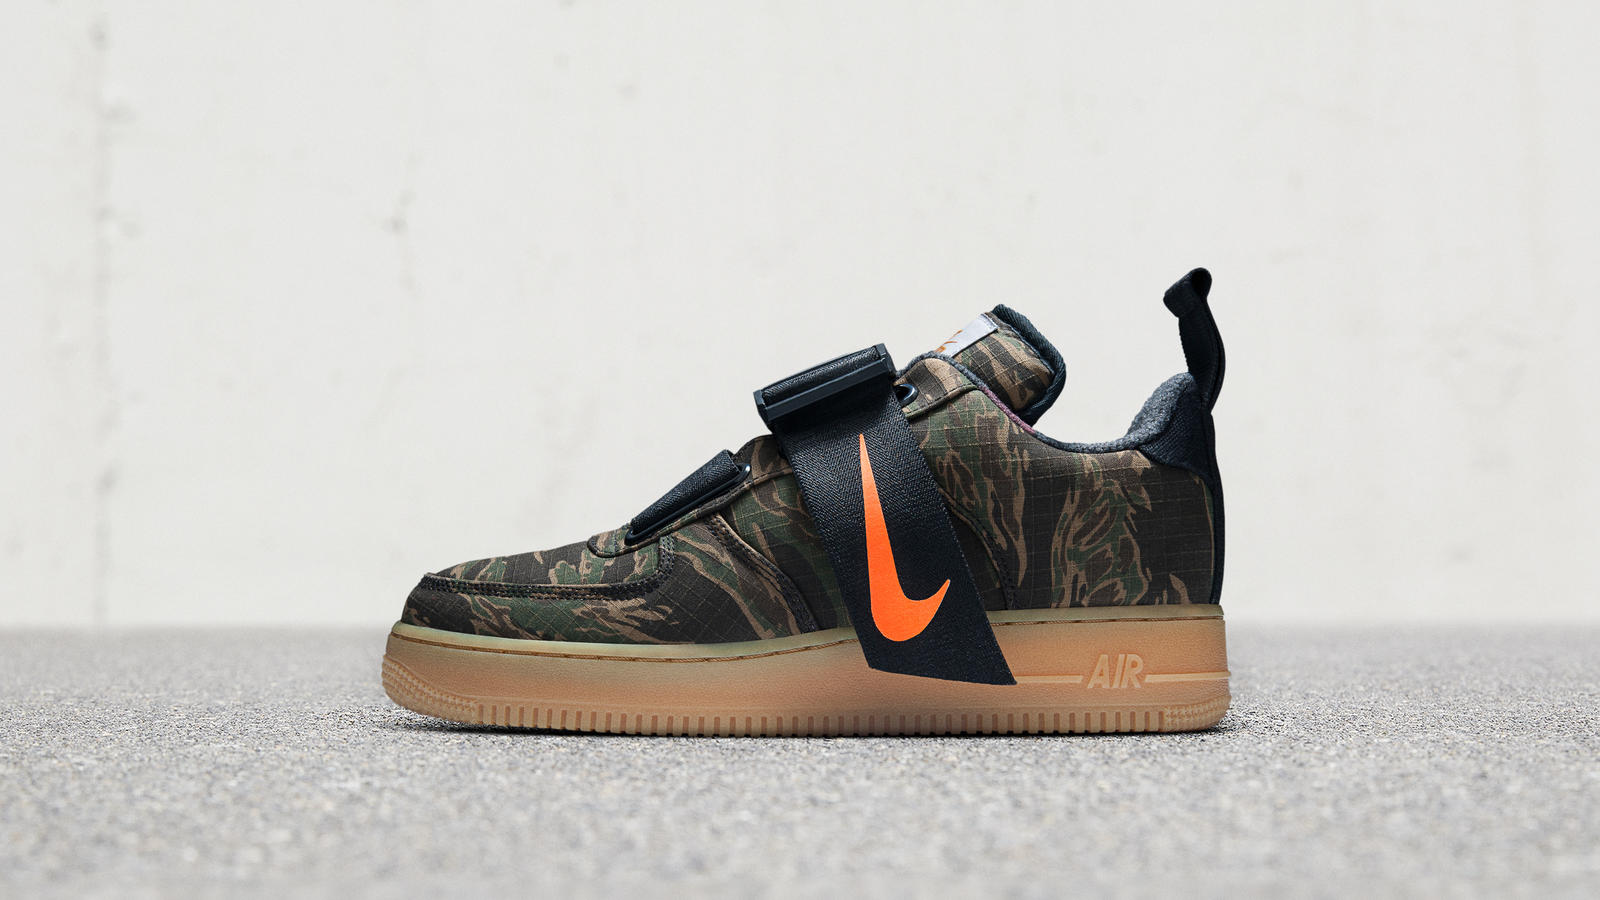 Featuredfootwear nsw nikexcarhartt 10.12.18 686 hd 1600